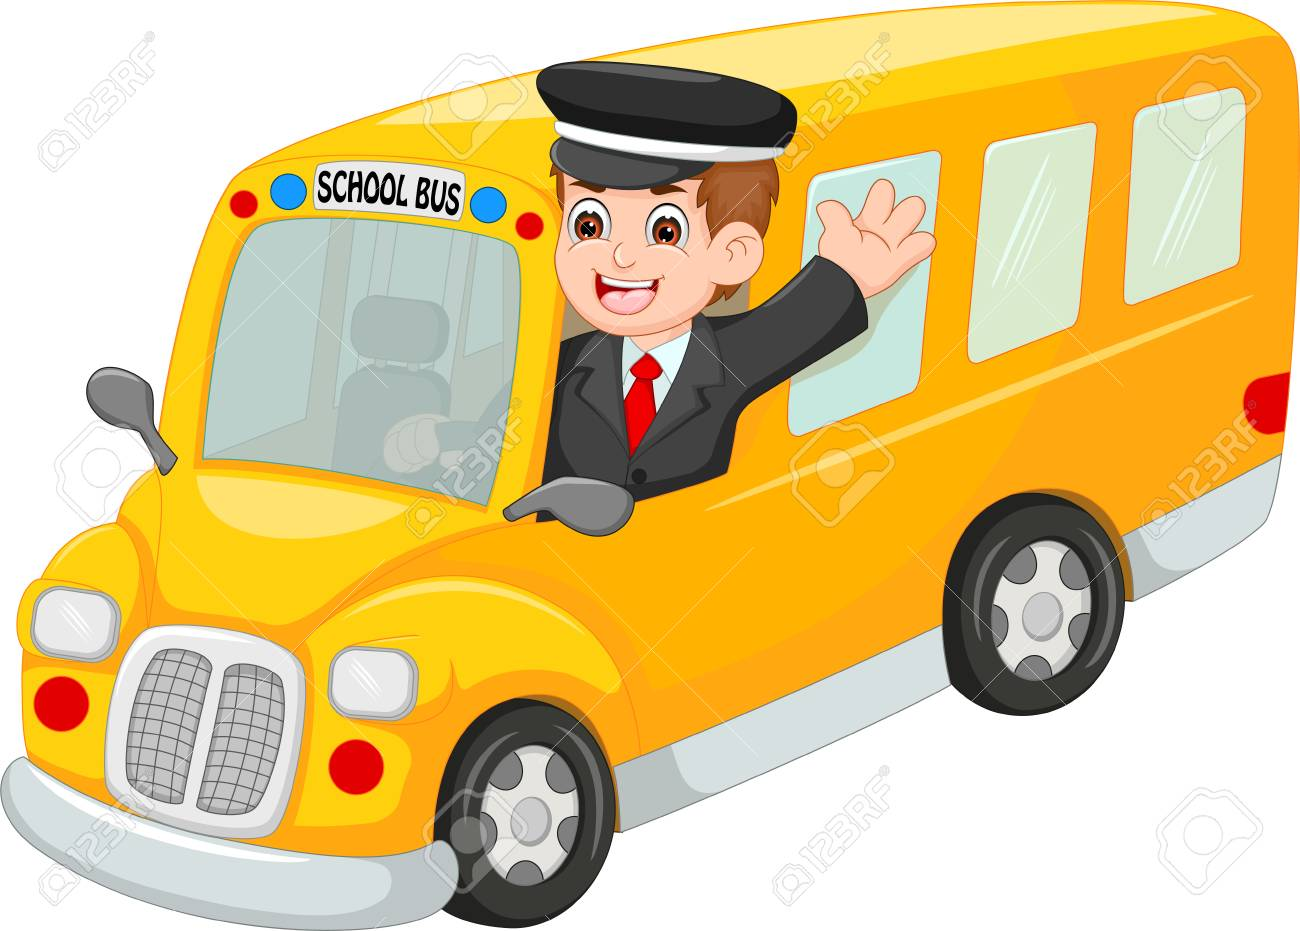 Handsome bus driver cartoon up bus with waving and smiling - 87917595